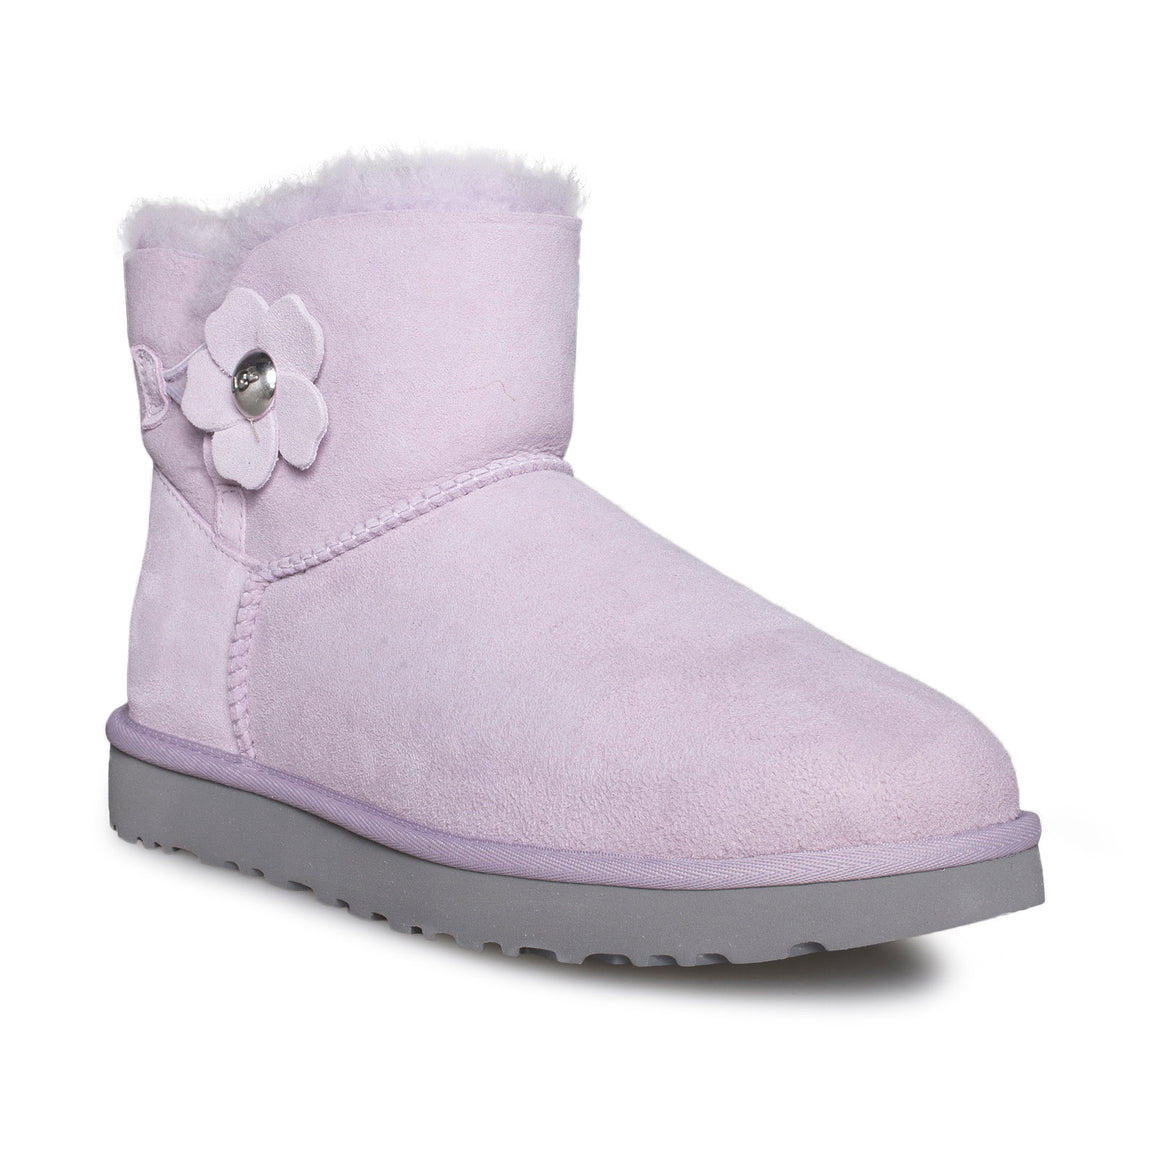 UGG Mini Bailey Button Poppy Lavender Fog Boots - Women's